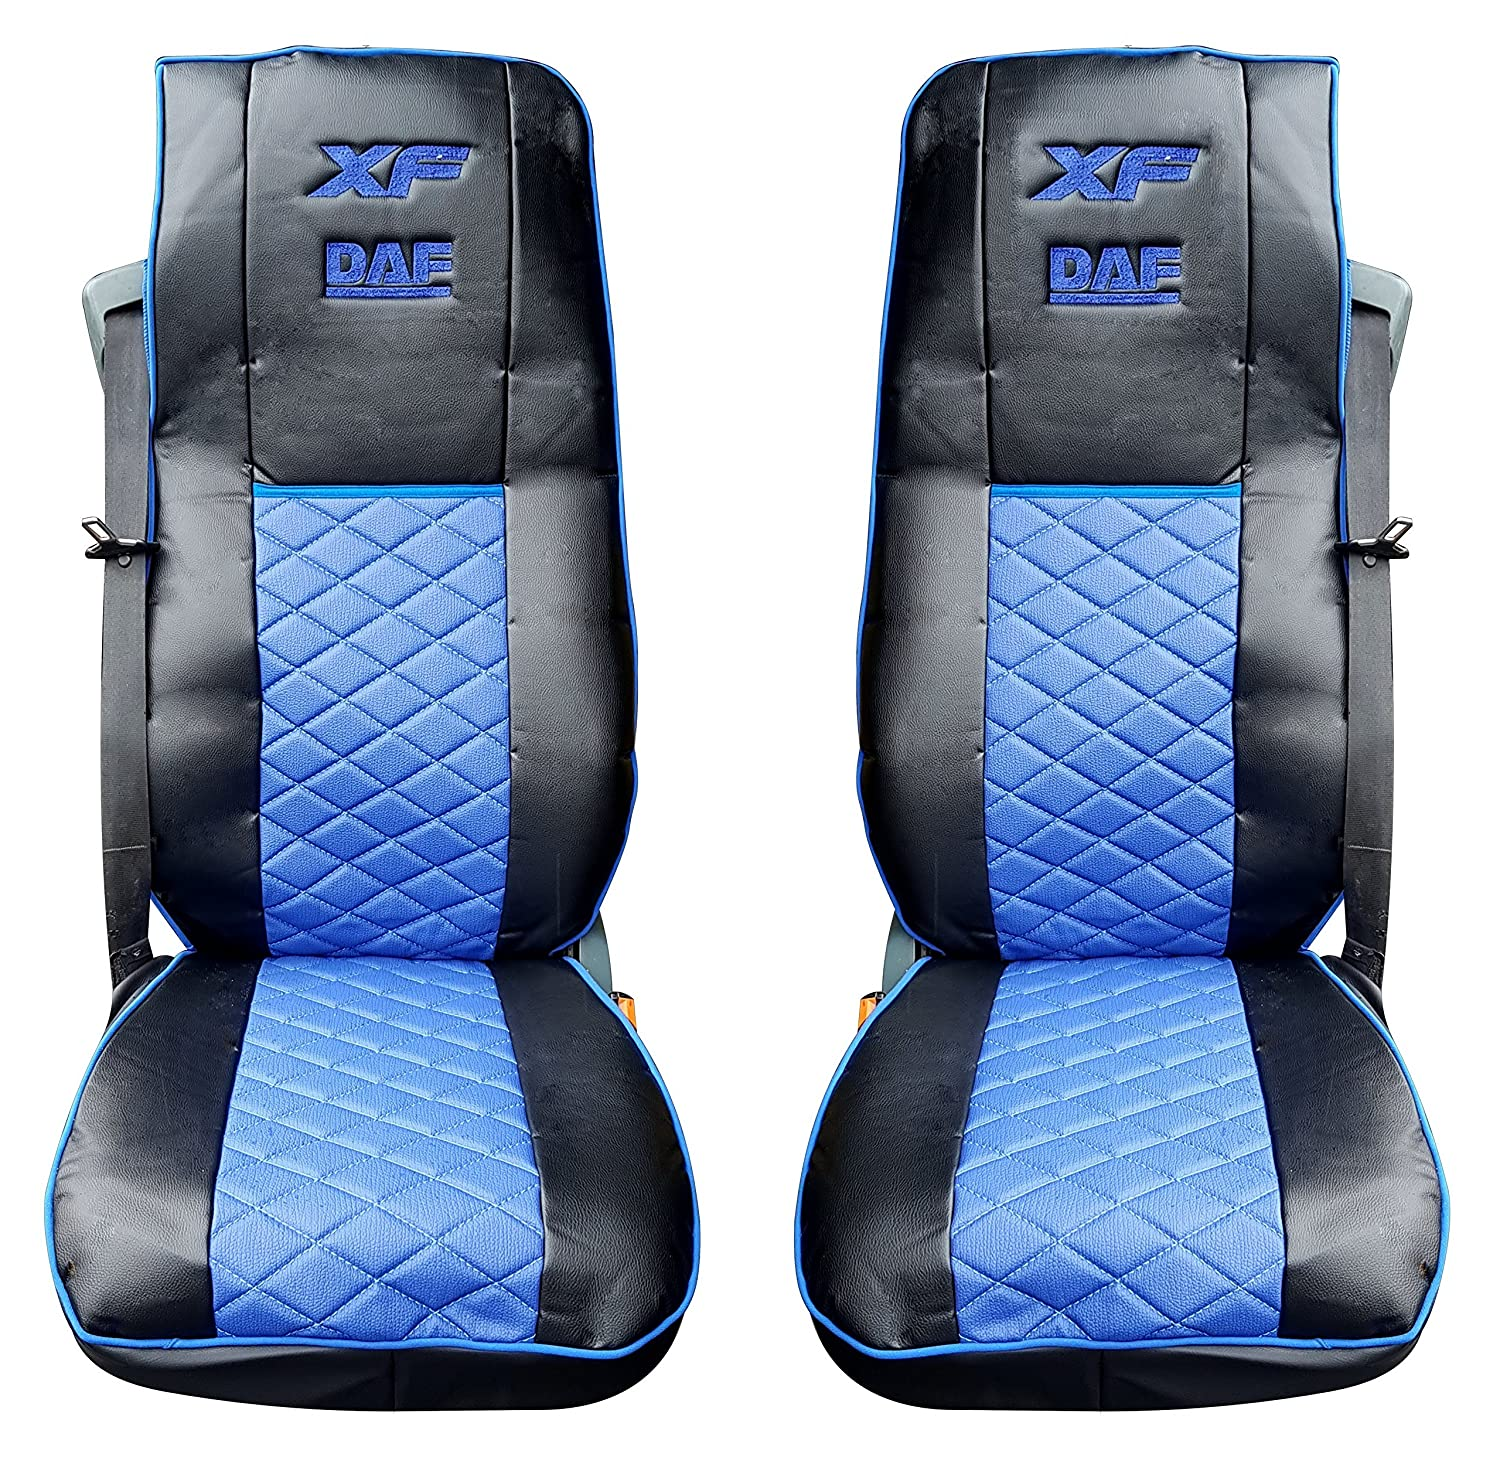 Set of 2 Pcs. High Quality Truck Seat Covers Protectors Cabin Trucker Accessories Decoration BLACK BLUE Colour 100% Eco Leather Unknown